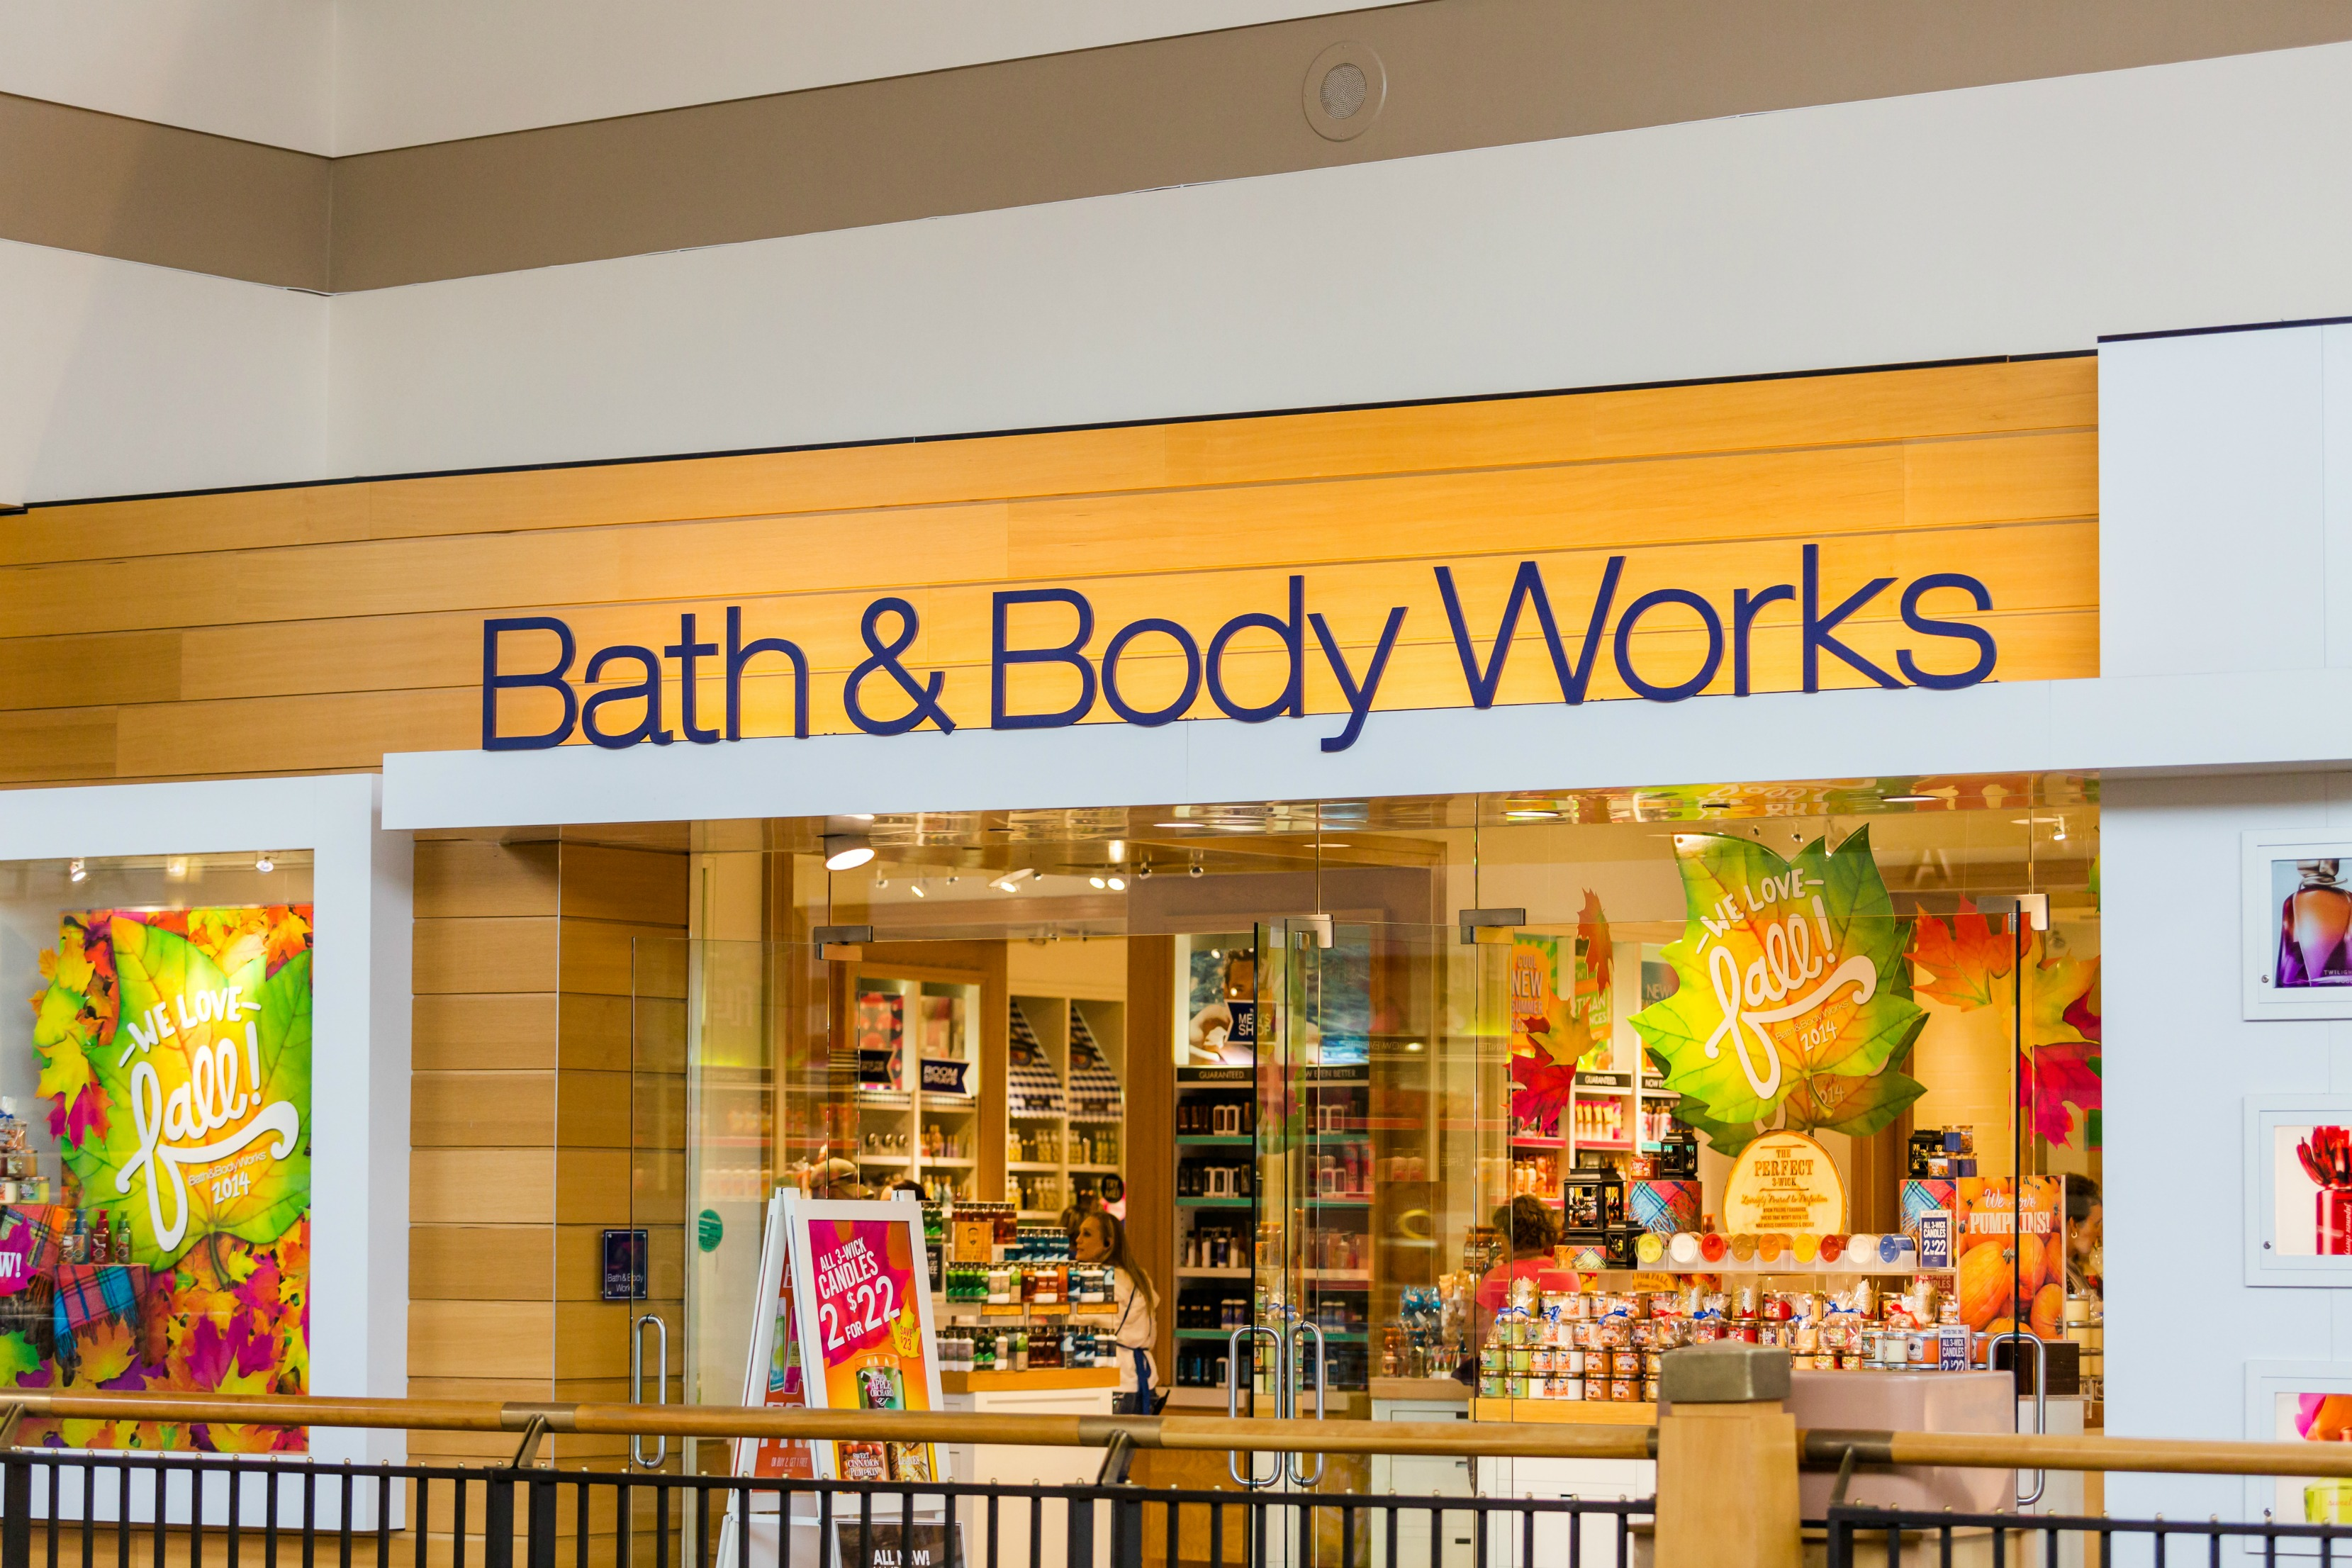 Bath & Body Products Pamper yourself with Belk's collection of bath and body care. Find bath products infused with amazing fragrances that can transform routine beauty care into a spa experience.